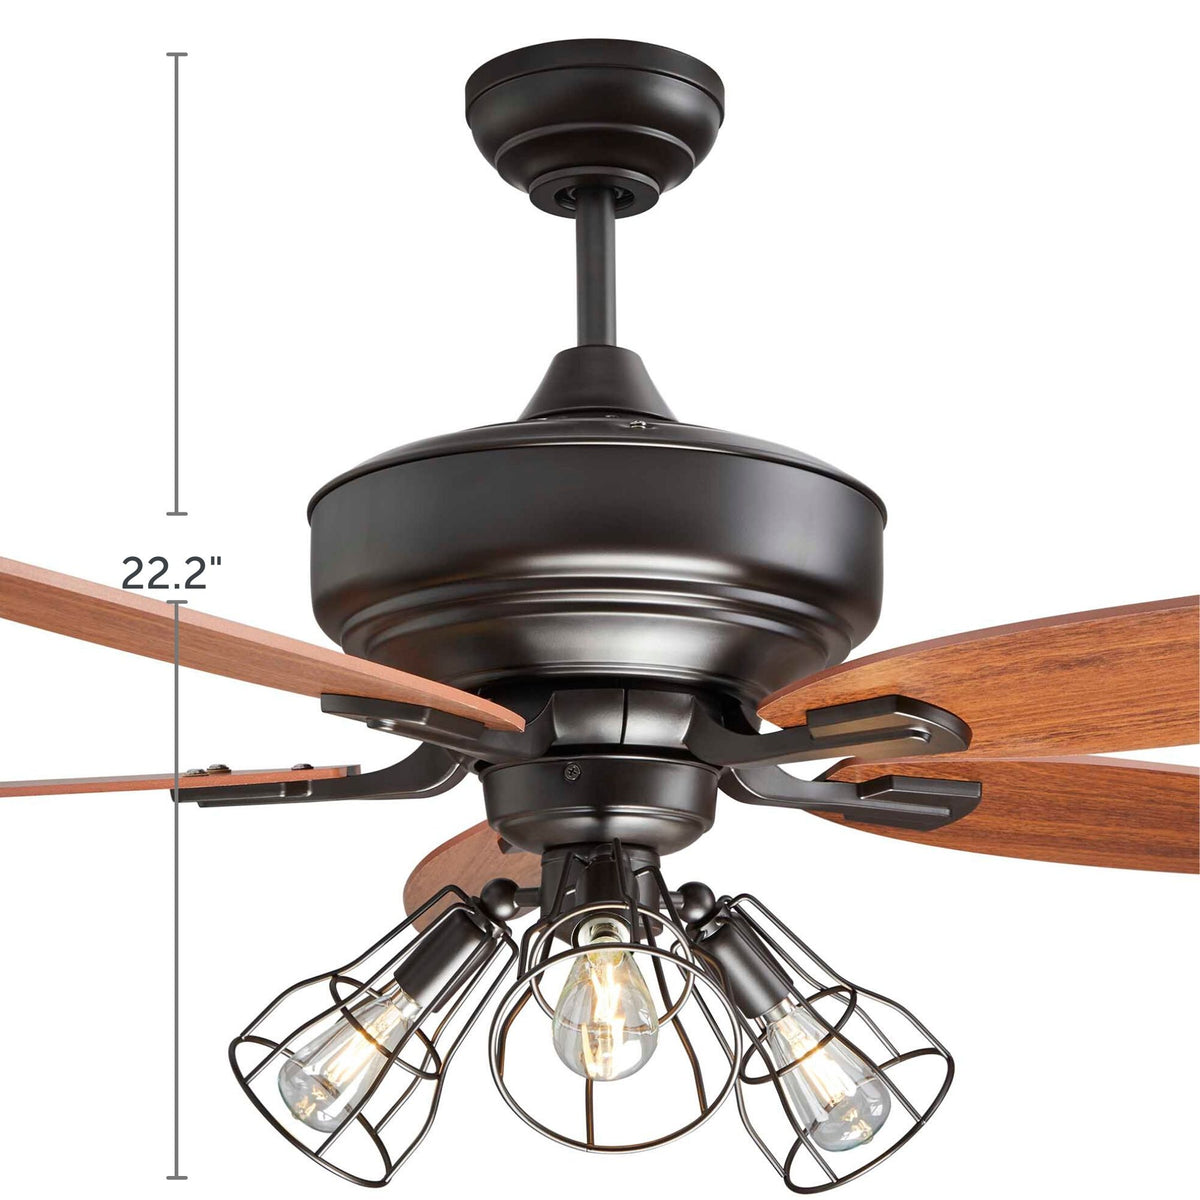 52 Inch Ceiling Fan 5 Blades Dimmable Led Lights Dark Brown Noma Us